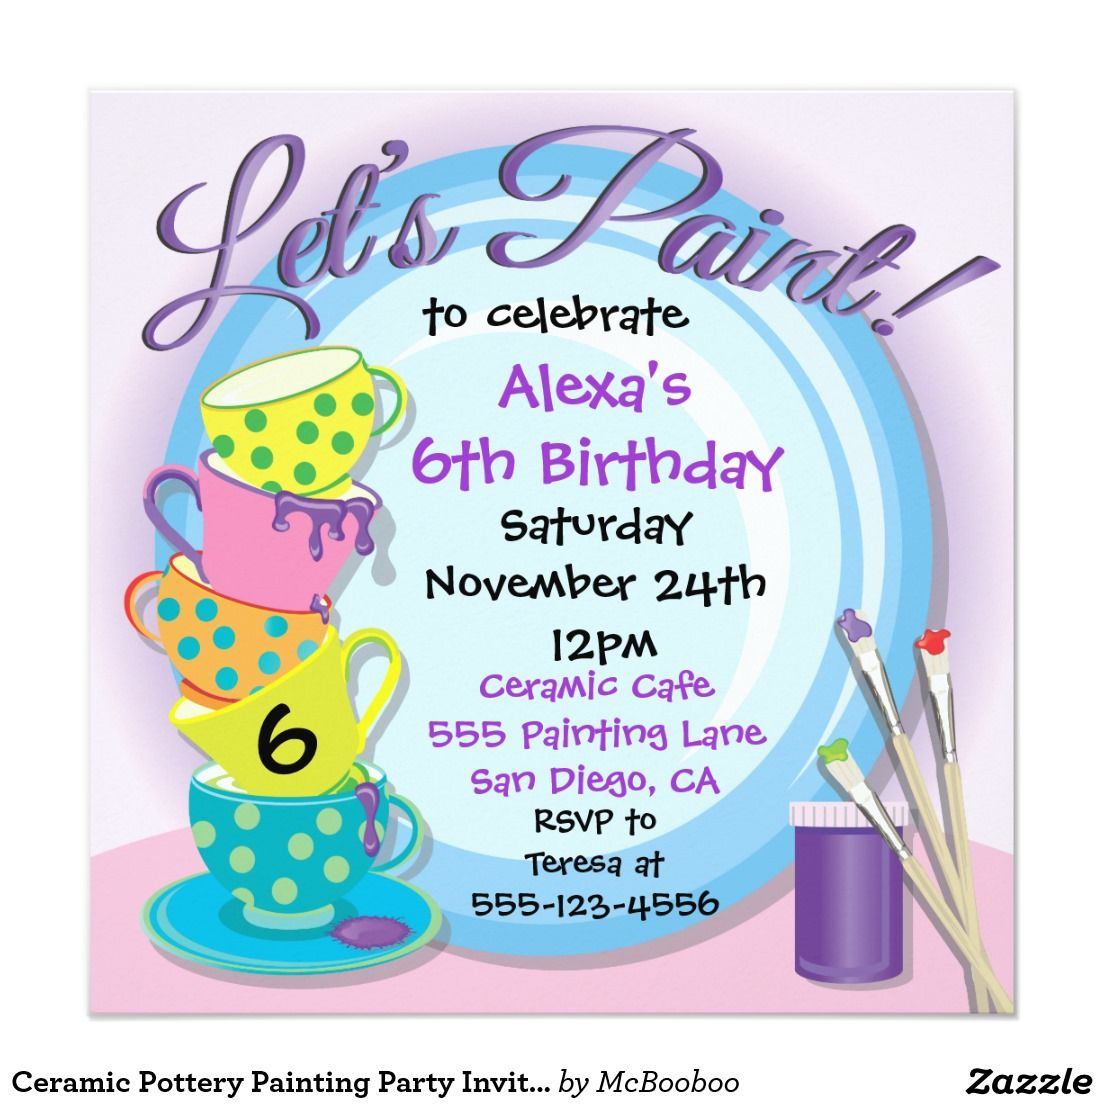 Ceramic Pottery Painting Party Invitations | Party invitations ...